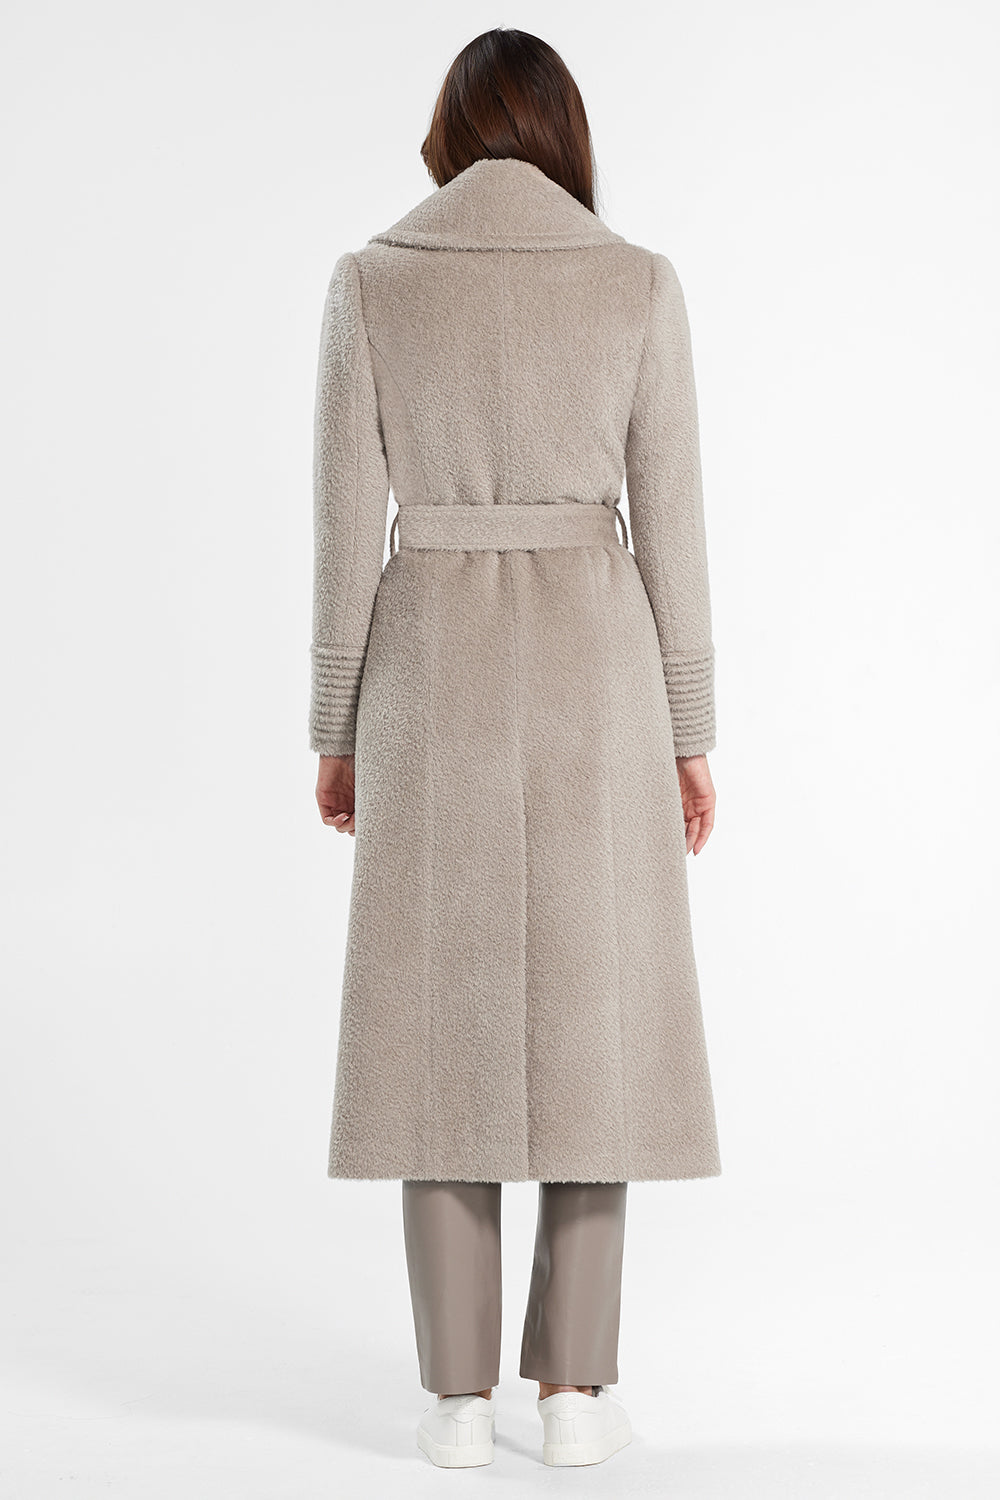 Sentaler Bouclé Alpaca Long Notched Collar Wrap Coat featured in Bouclé Alpaca and available in Sand. Seen from back.